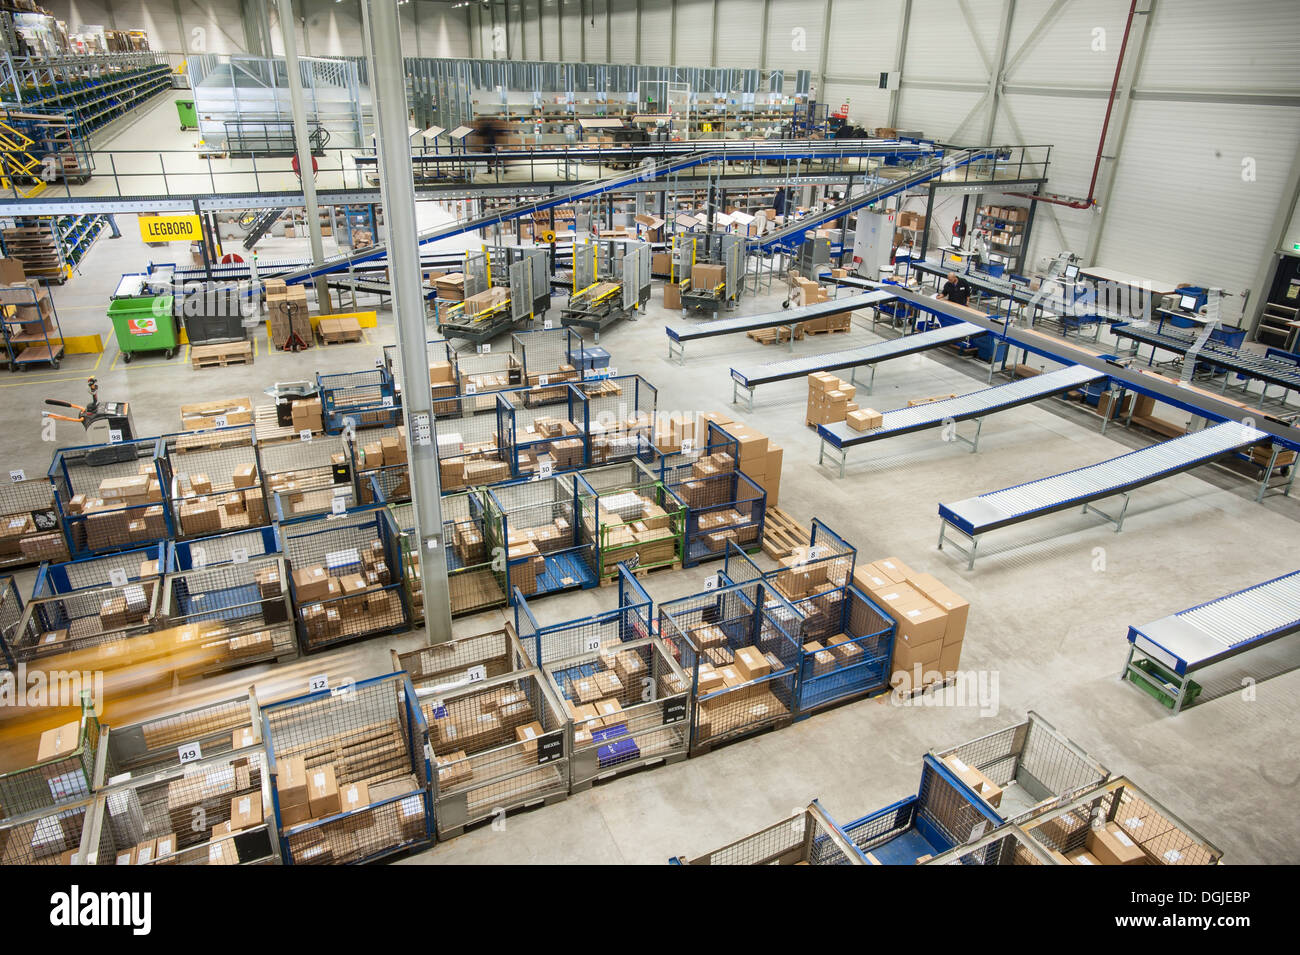 Assembling orders in distribution warehouse - Stock Image